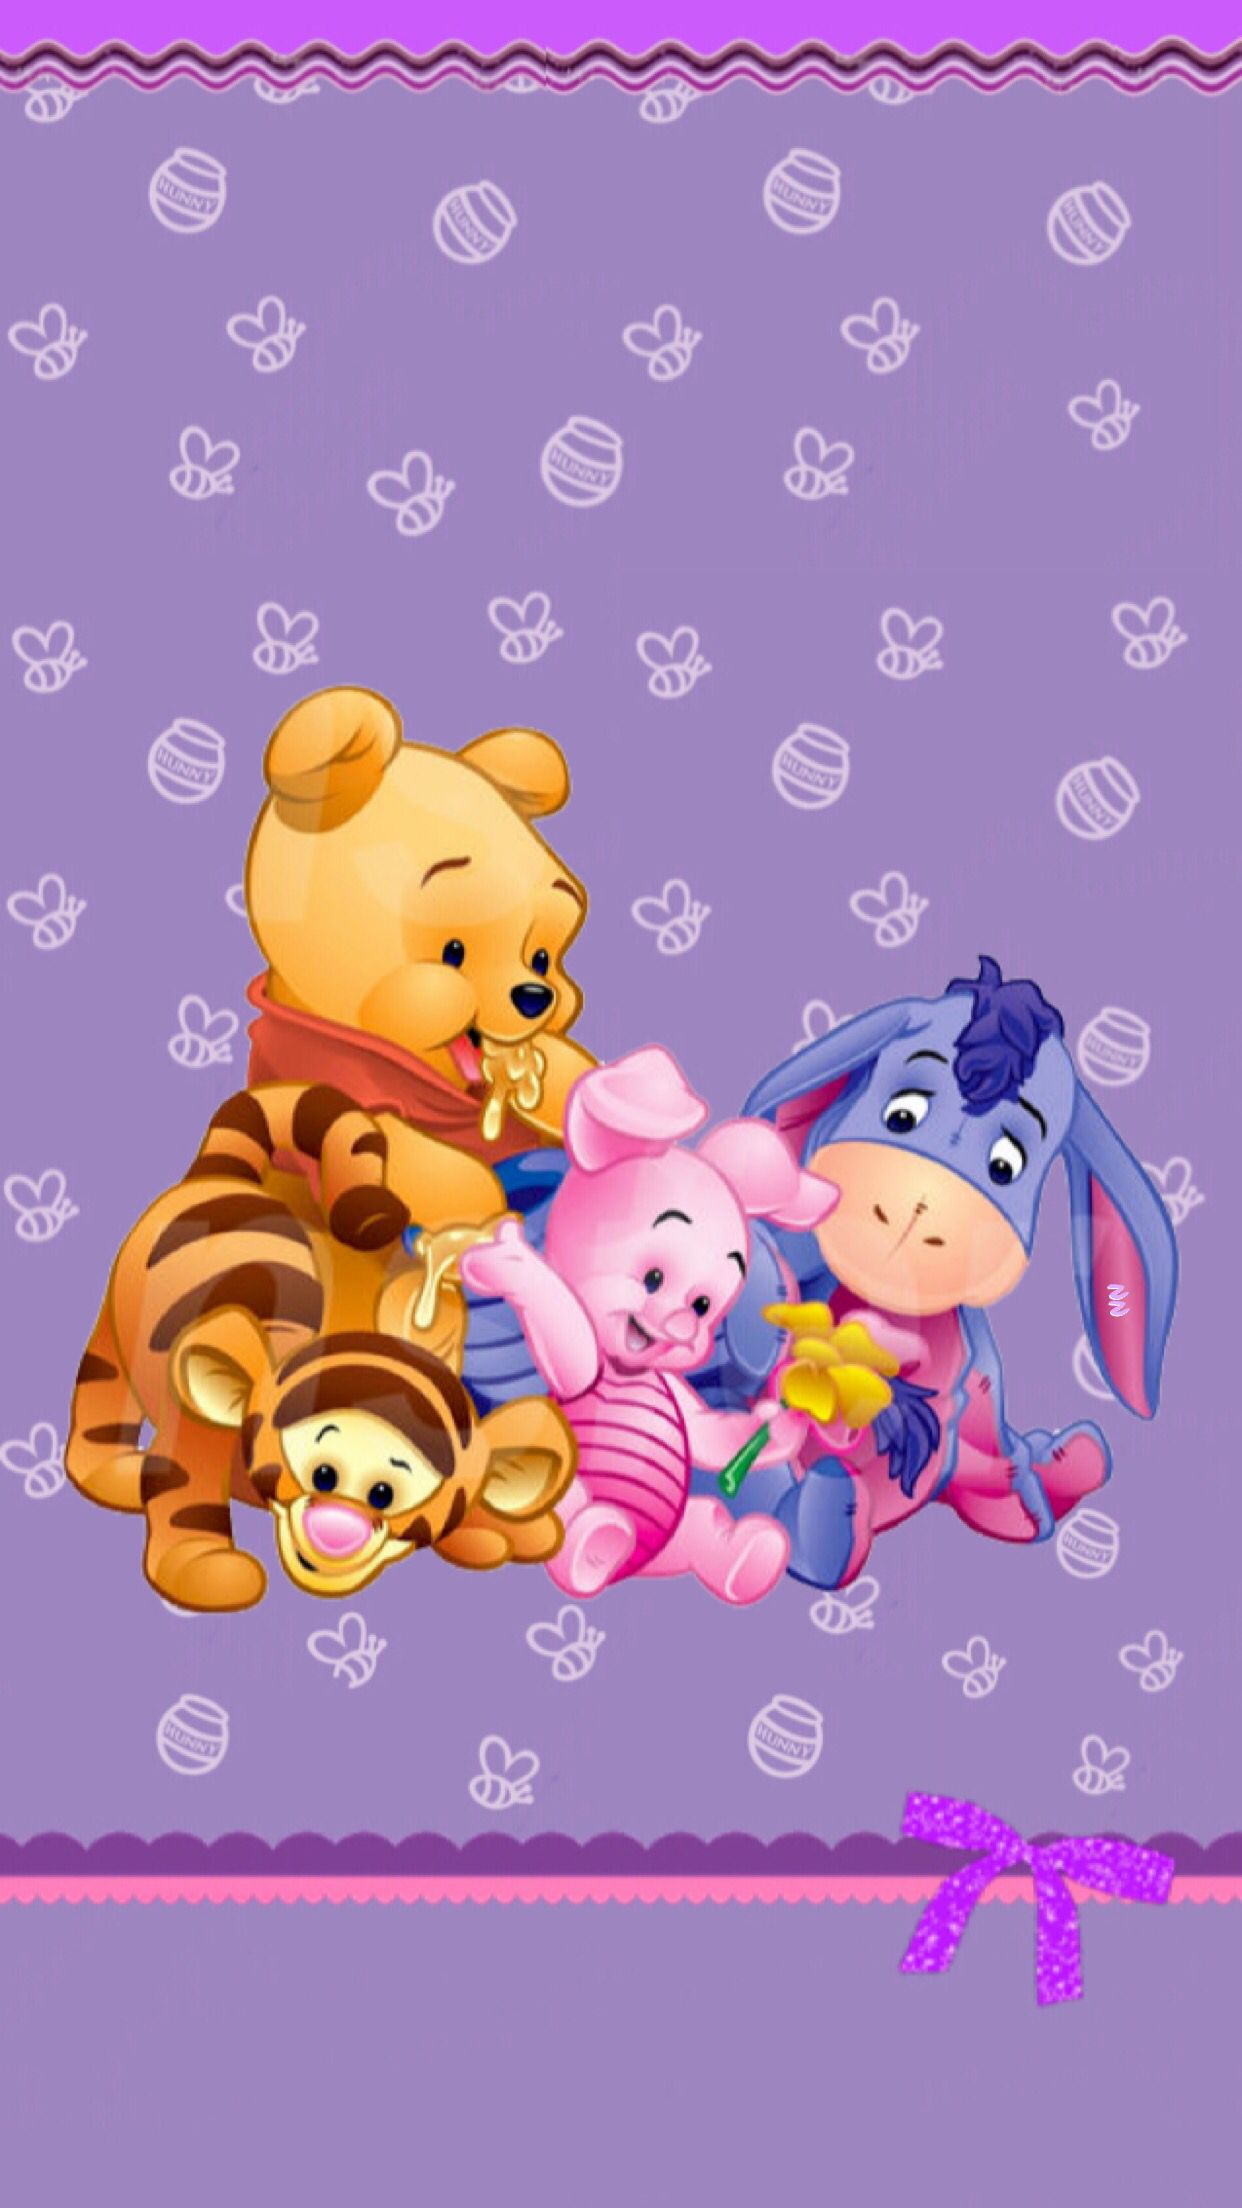 Pin By Josie Hovell On Disney Cute Winnie The Pooh Winnie The Pooh Pictures Disney Winnie The Pooh